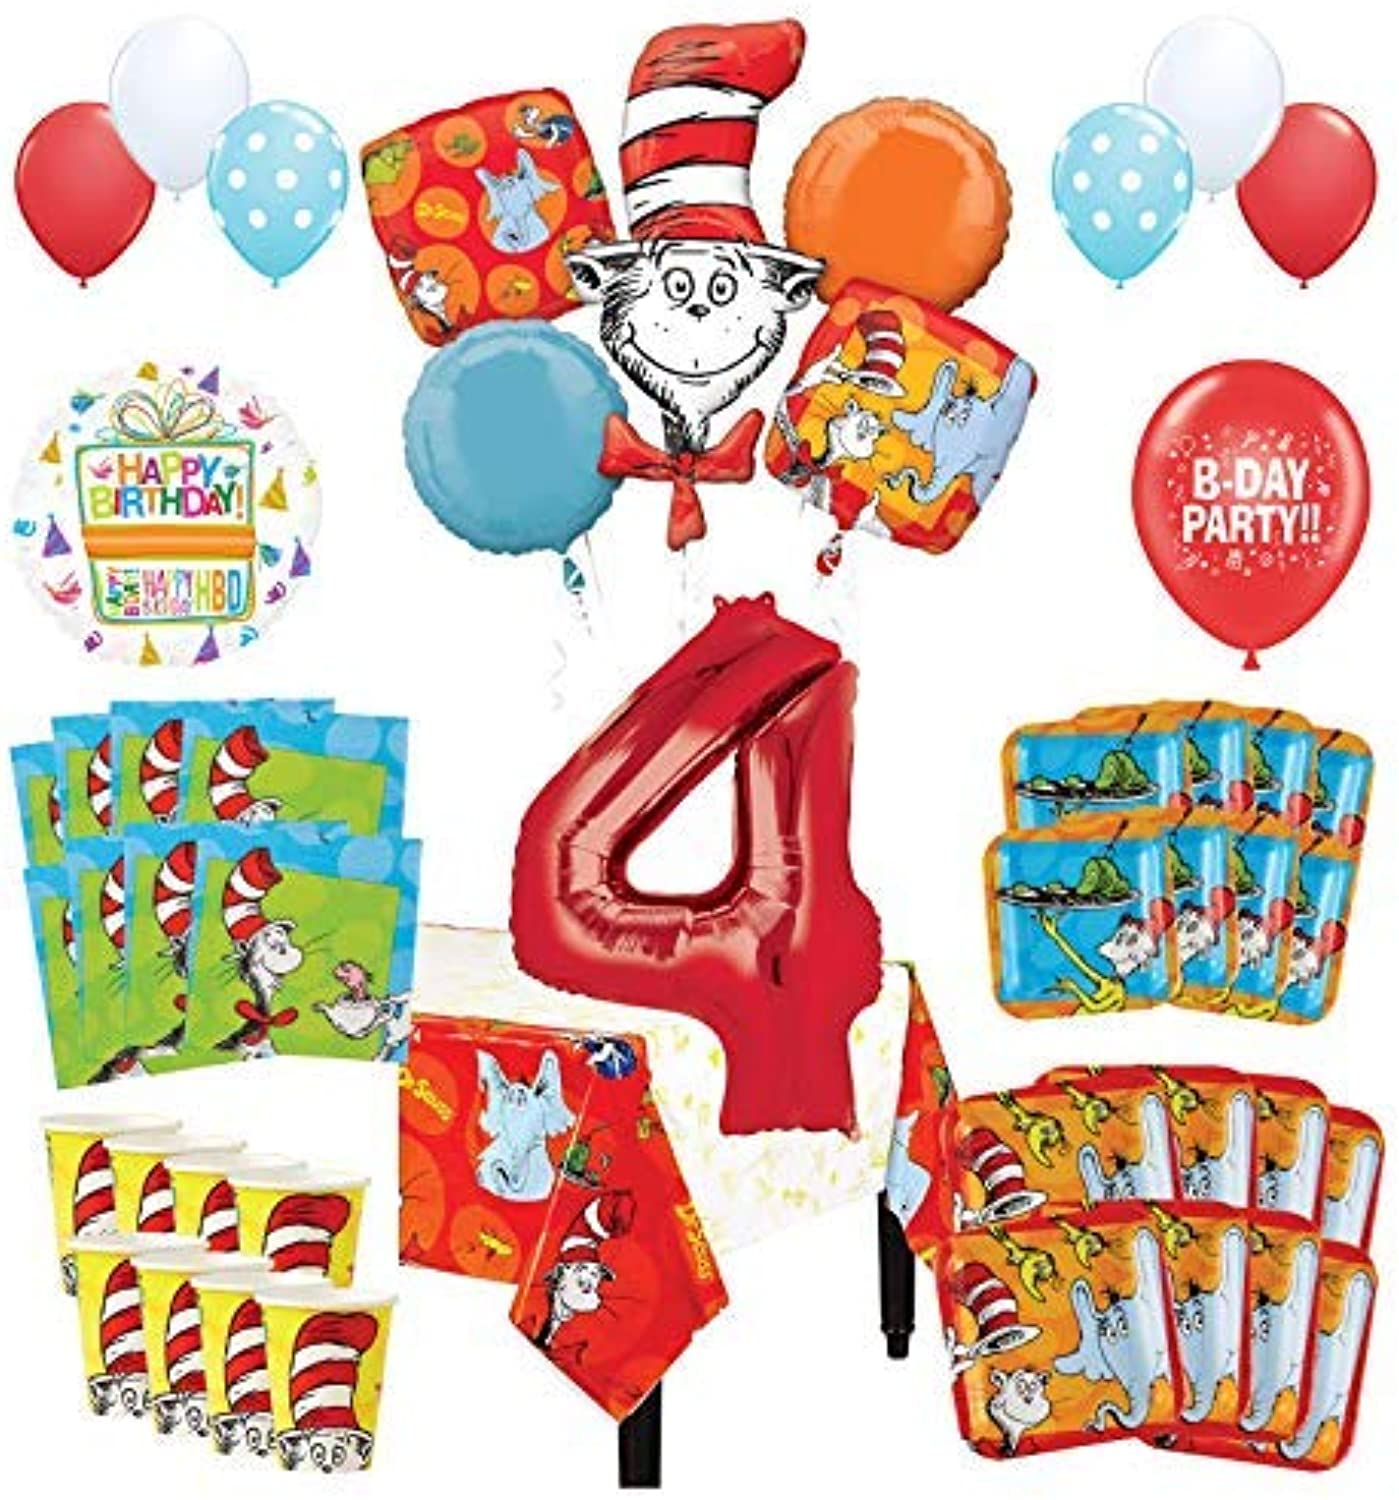 Mayflower Products Dr Seuss 4th Birthday Party Supplies 8 Guest Decoration Kit and Balloon Bouquet